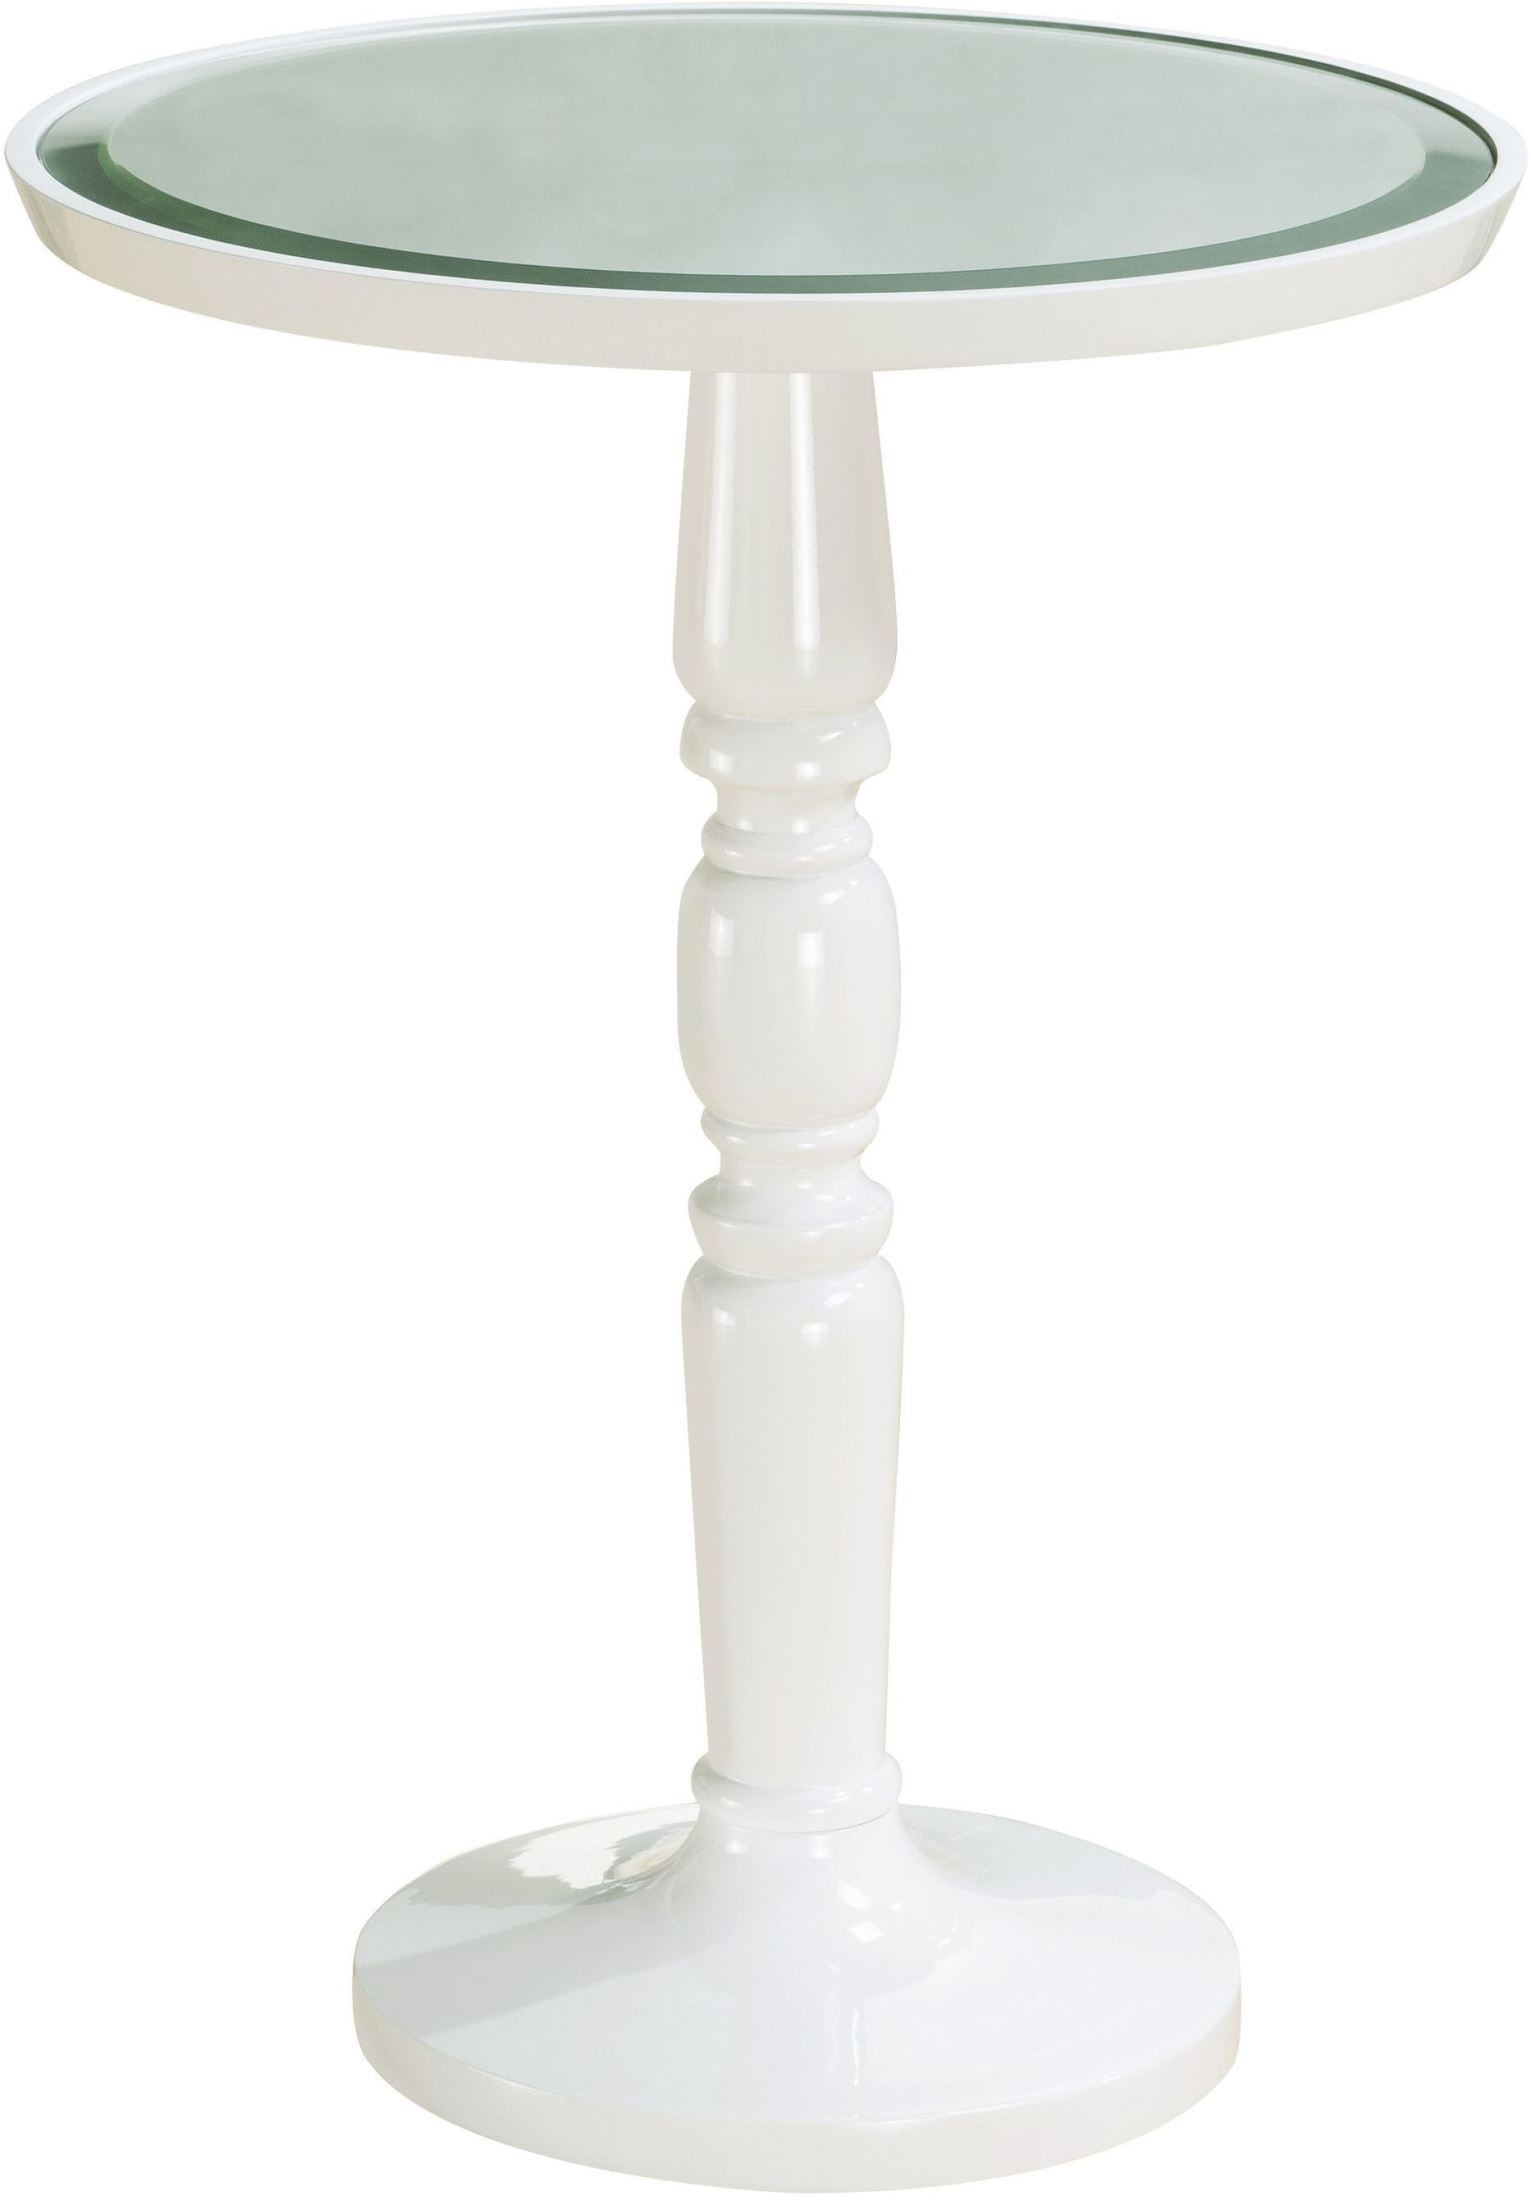 white round accent table neelan outside lawn chairs cherry wood coffee tablecloth console with cabinets glass and end tables set indoor door mats full length wall mirror calgary